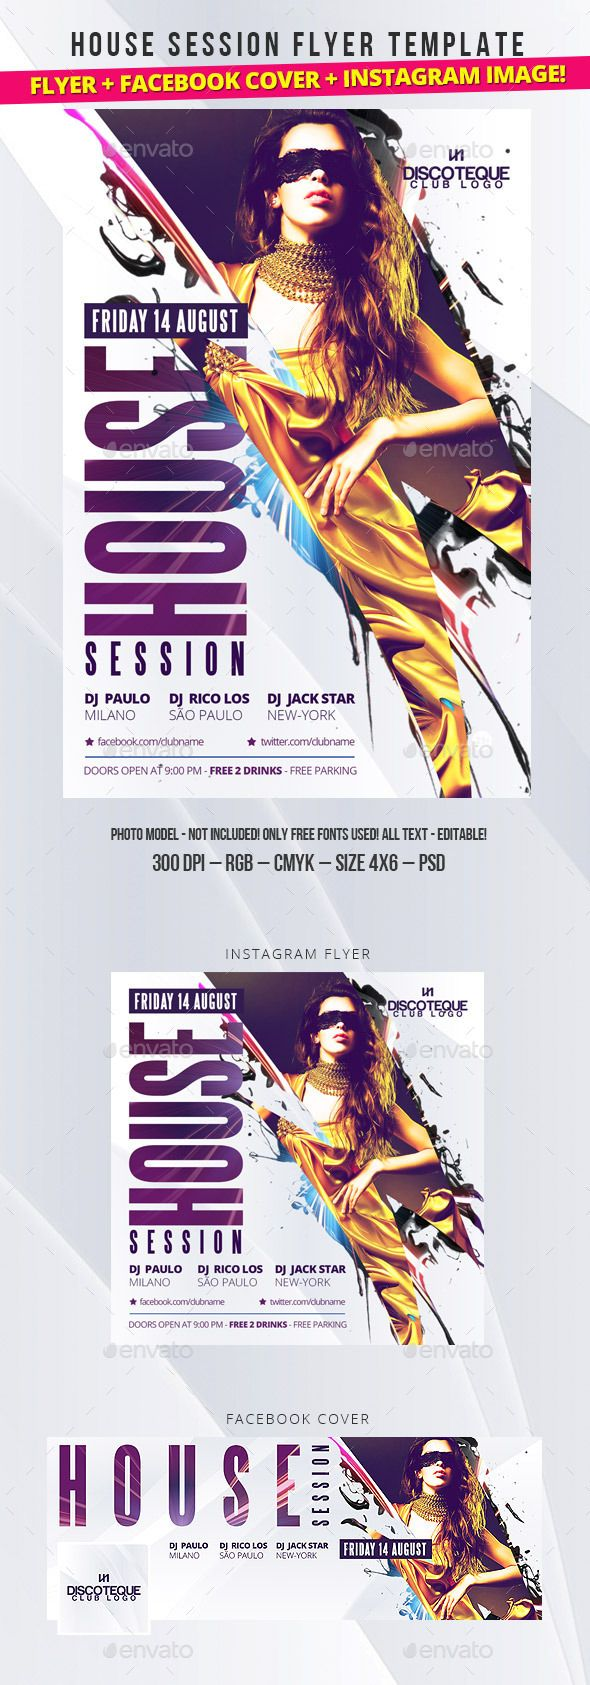 Club Flyer. Professional club party flyer template. #flyer #design #printDesign #party #club #print #deep #dj #house #NightClub